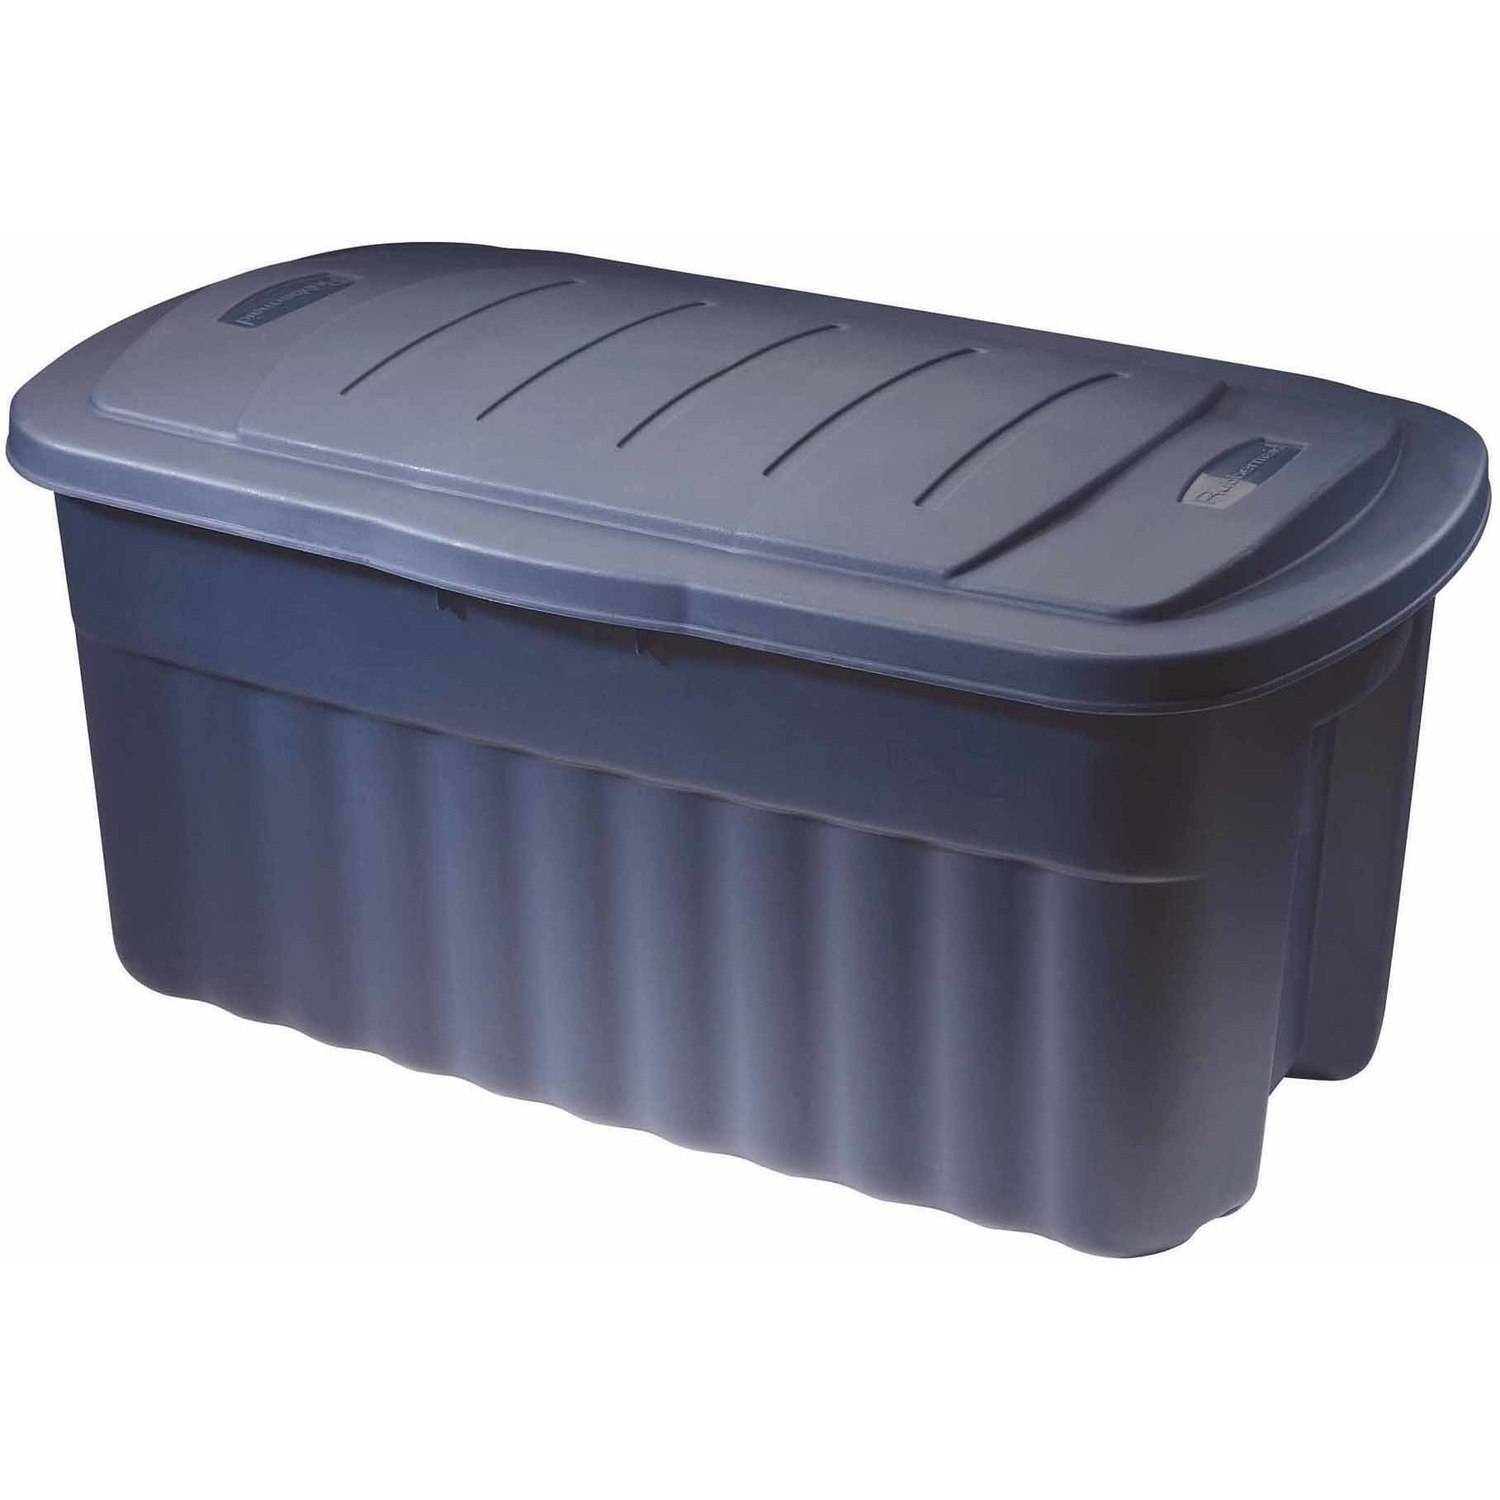 Rubbermaid Roughneck 40-Gallon Hinged Jumbo Storage Box